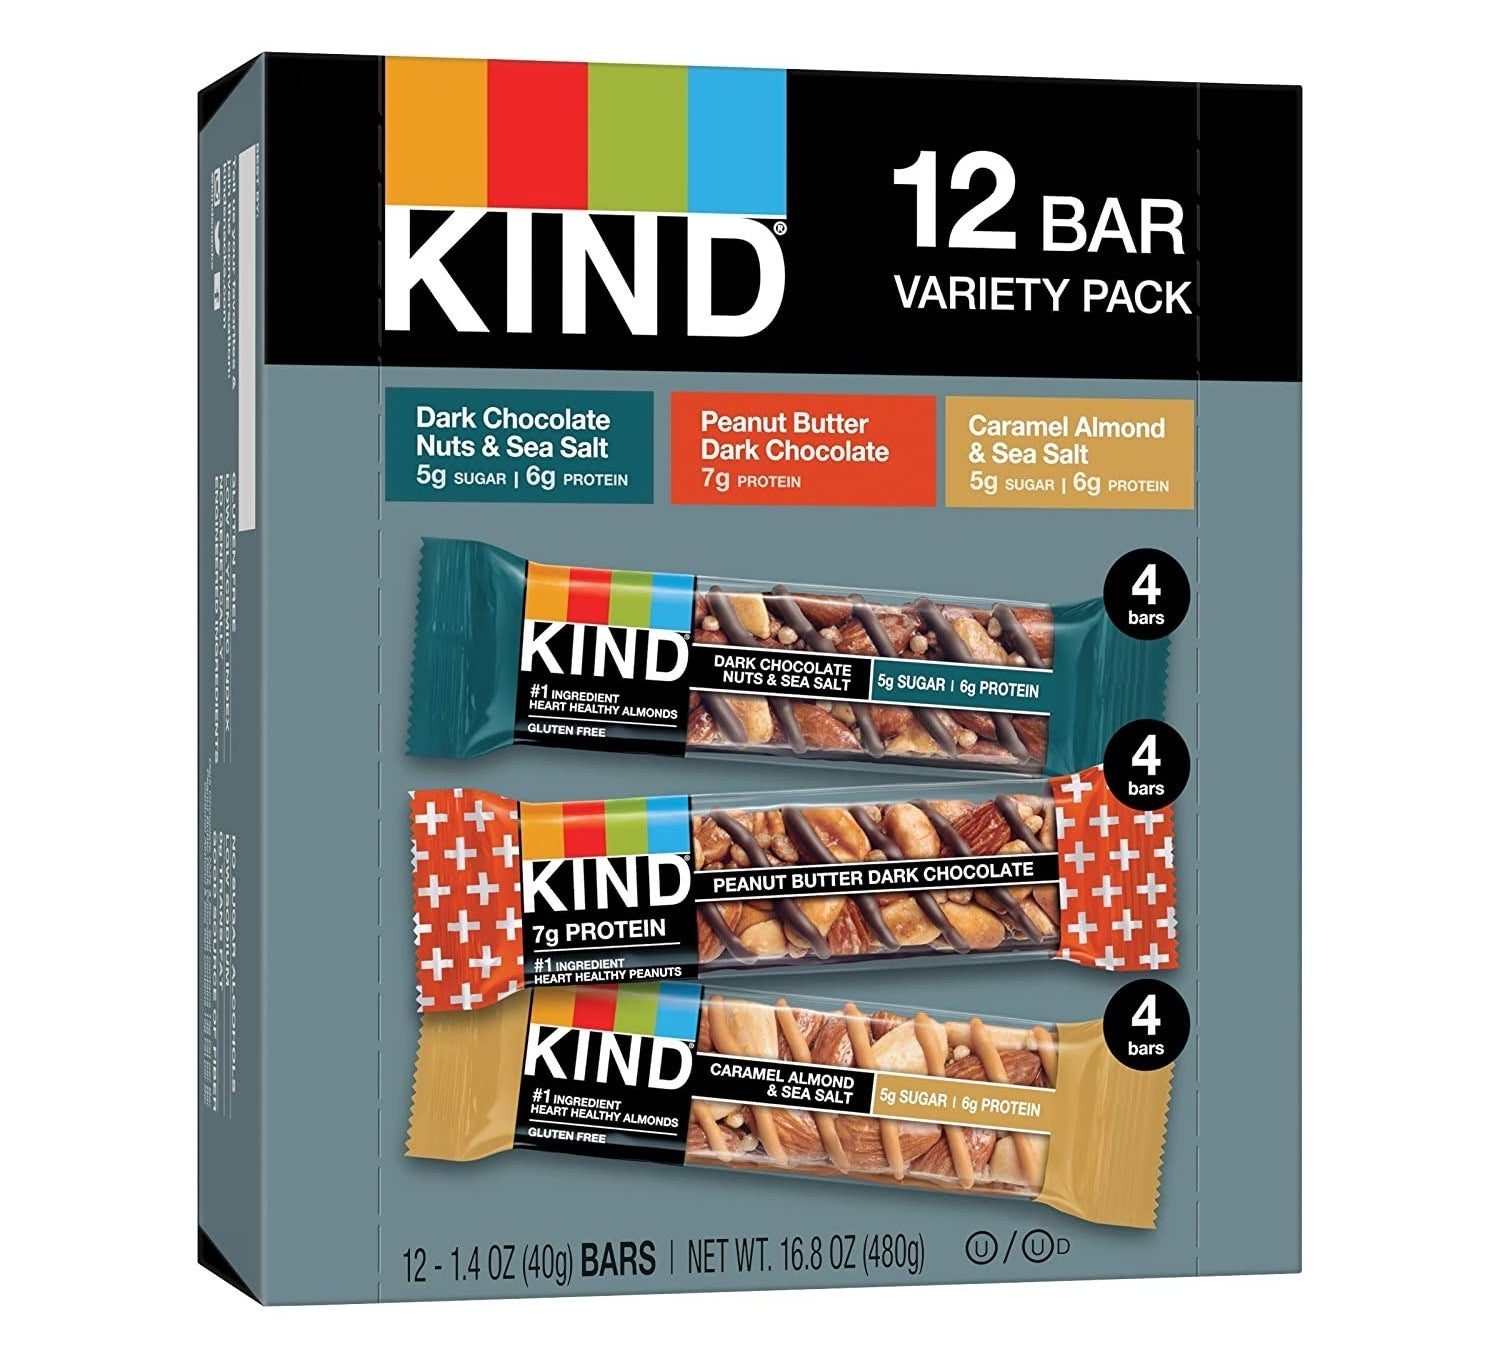 the box of bars with images of the three different included flavors on it